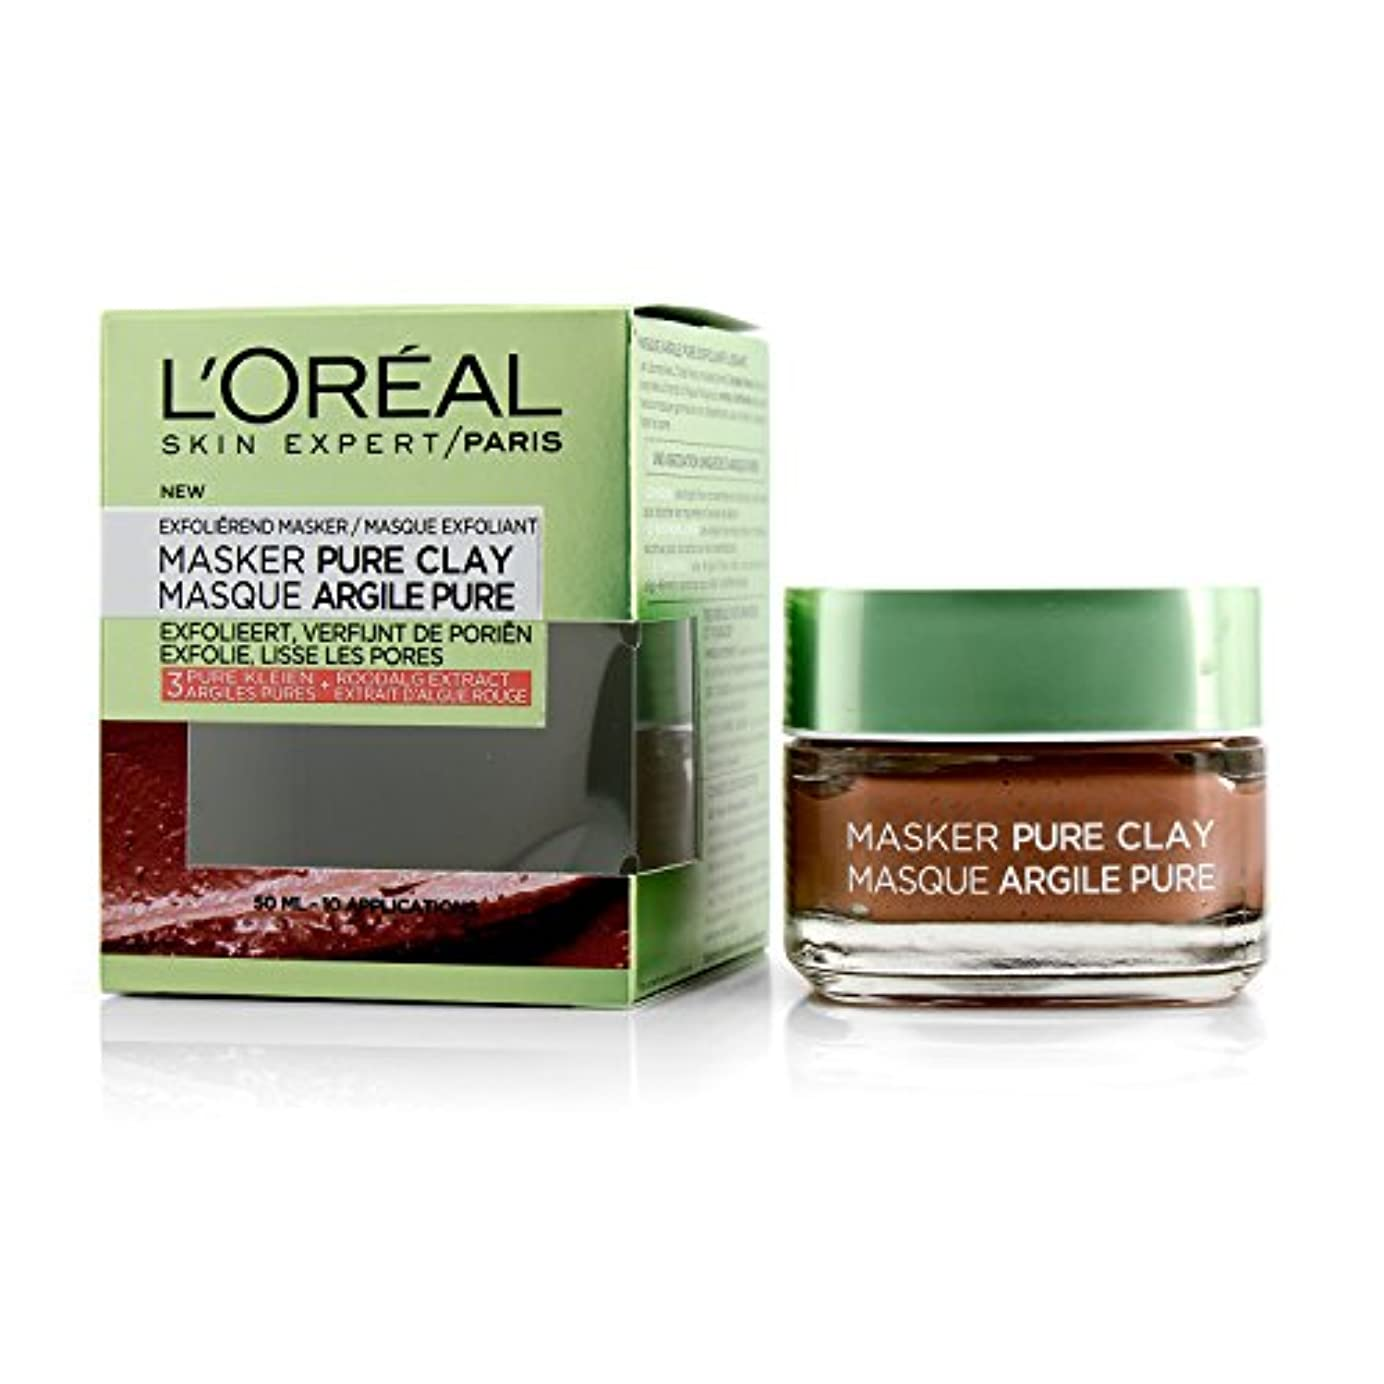 ロレアル Skin Expert Pure Clay Mask - Exfoliate & Refine Pores 50ml/1.7oz並行輸入品